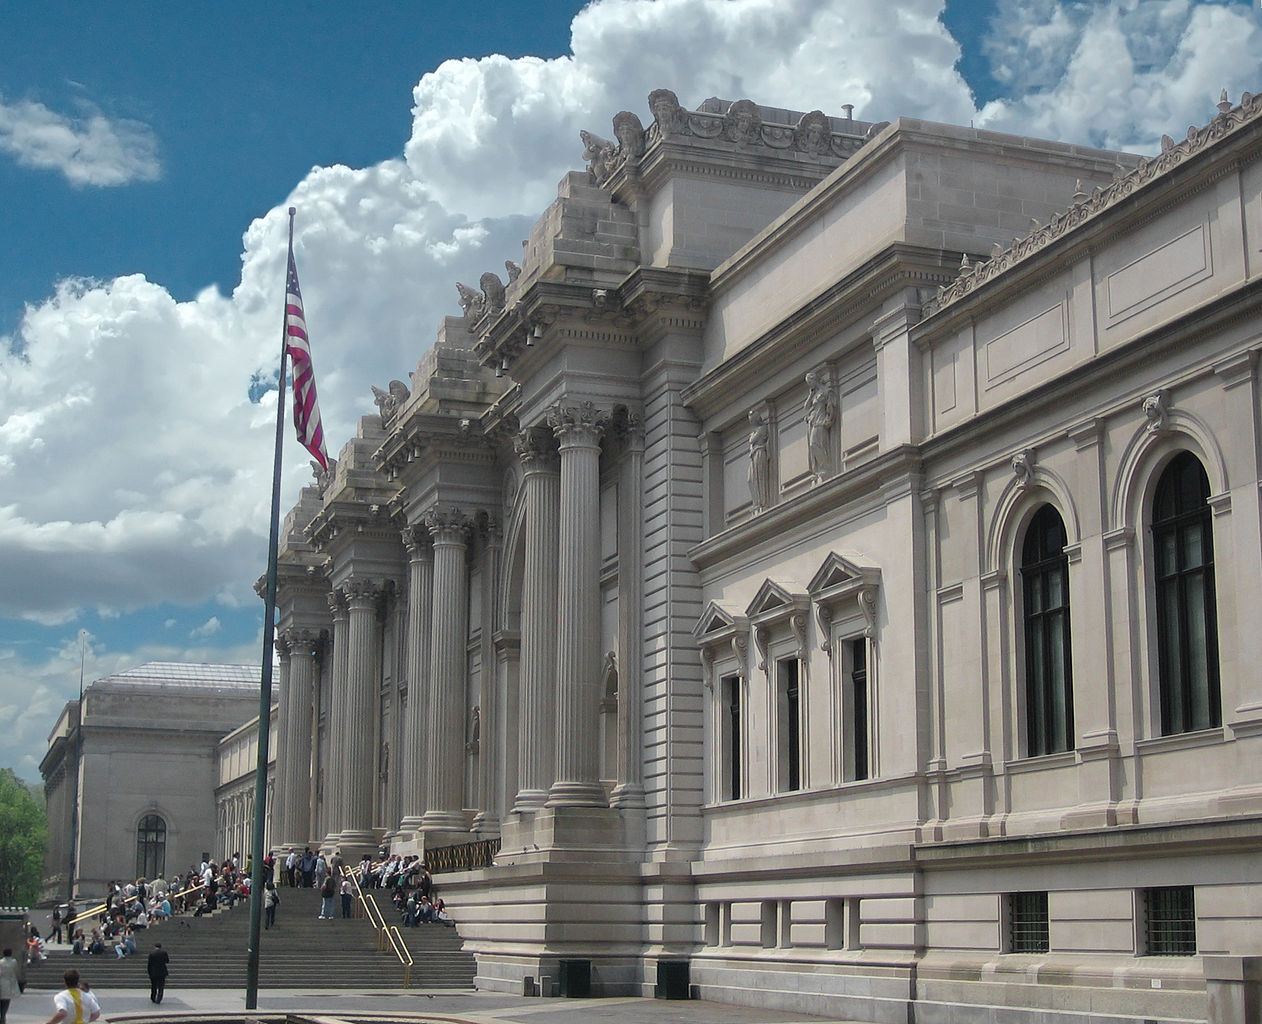 Best Attractions In New York: The Metropolitan Museum of Art